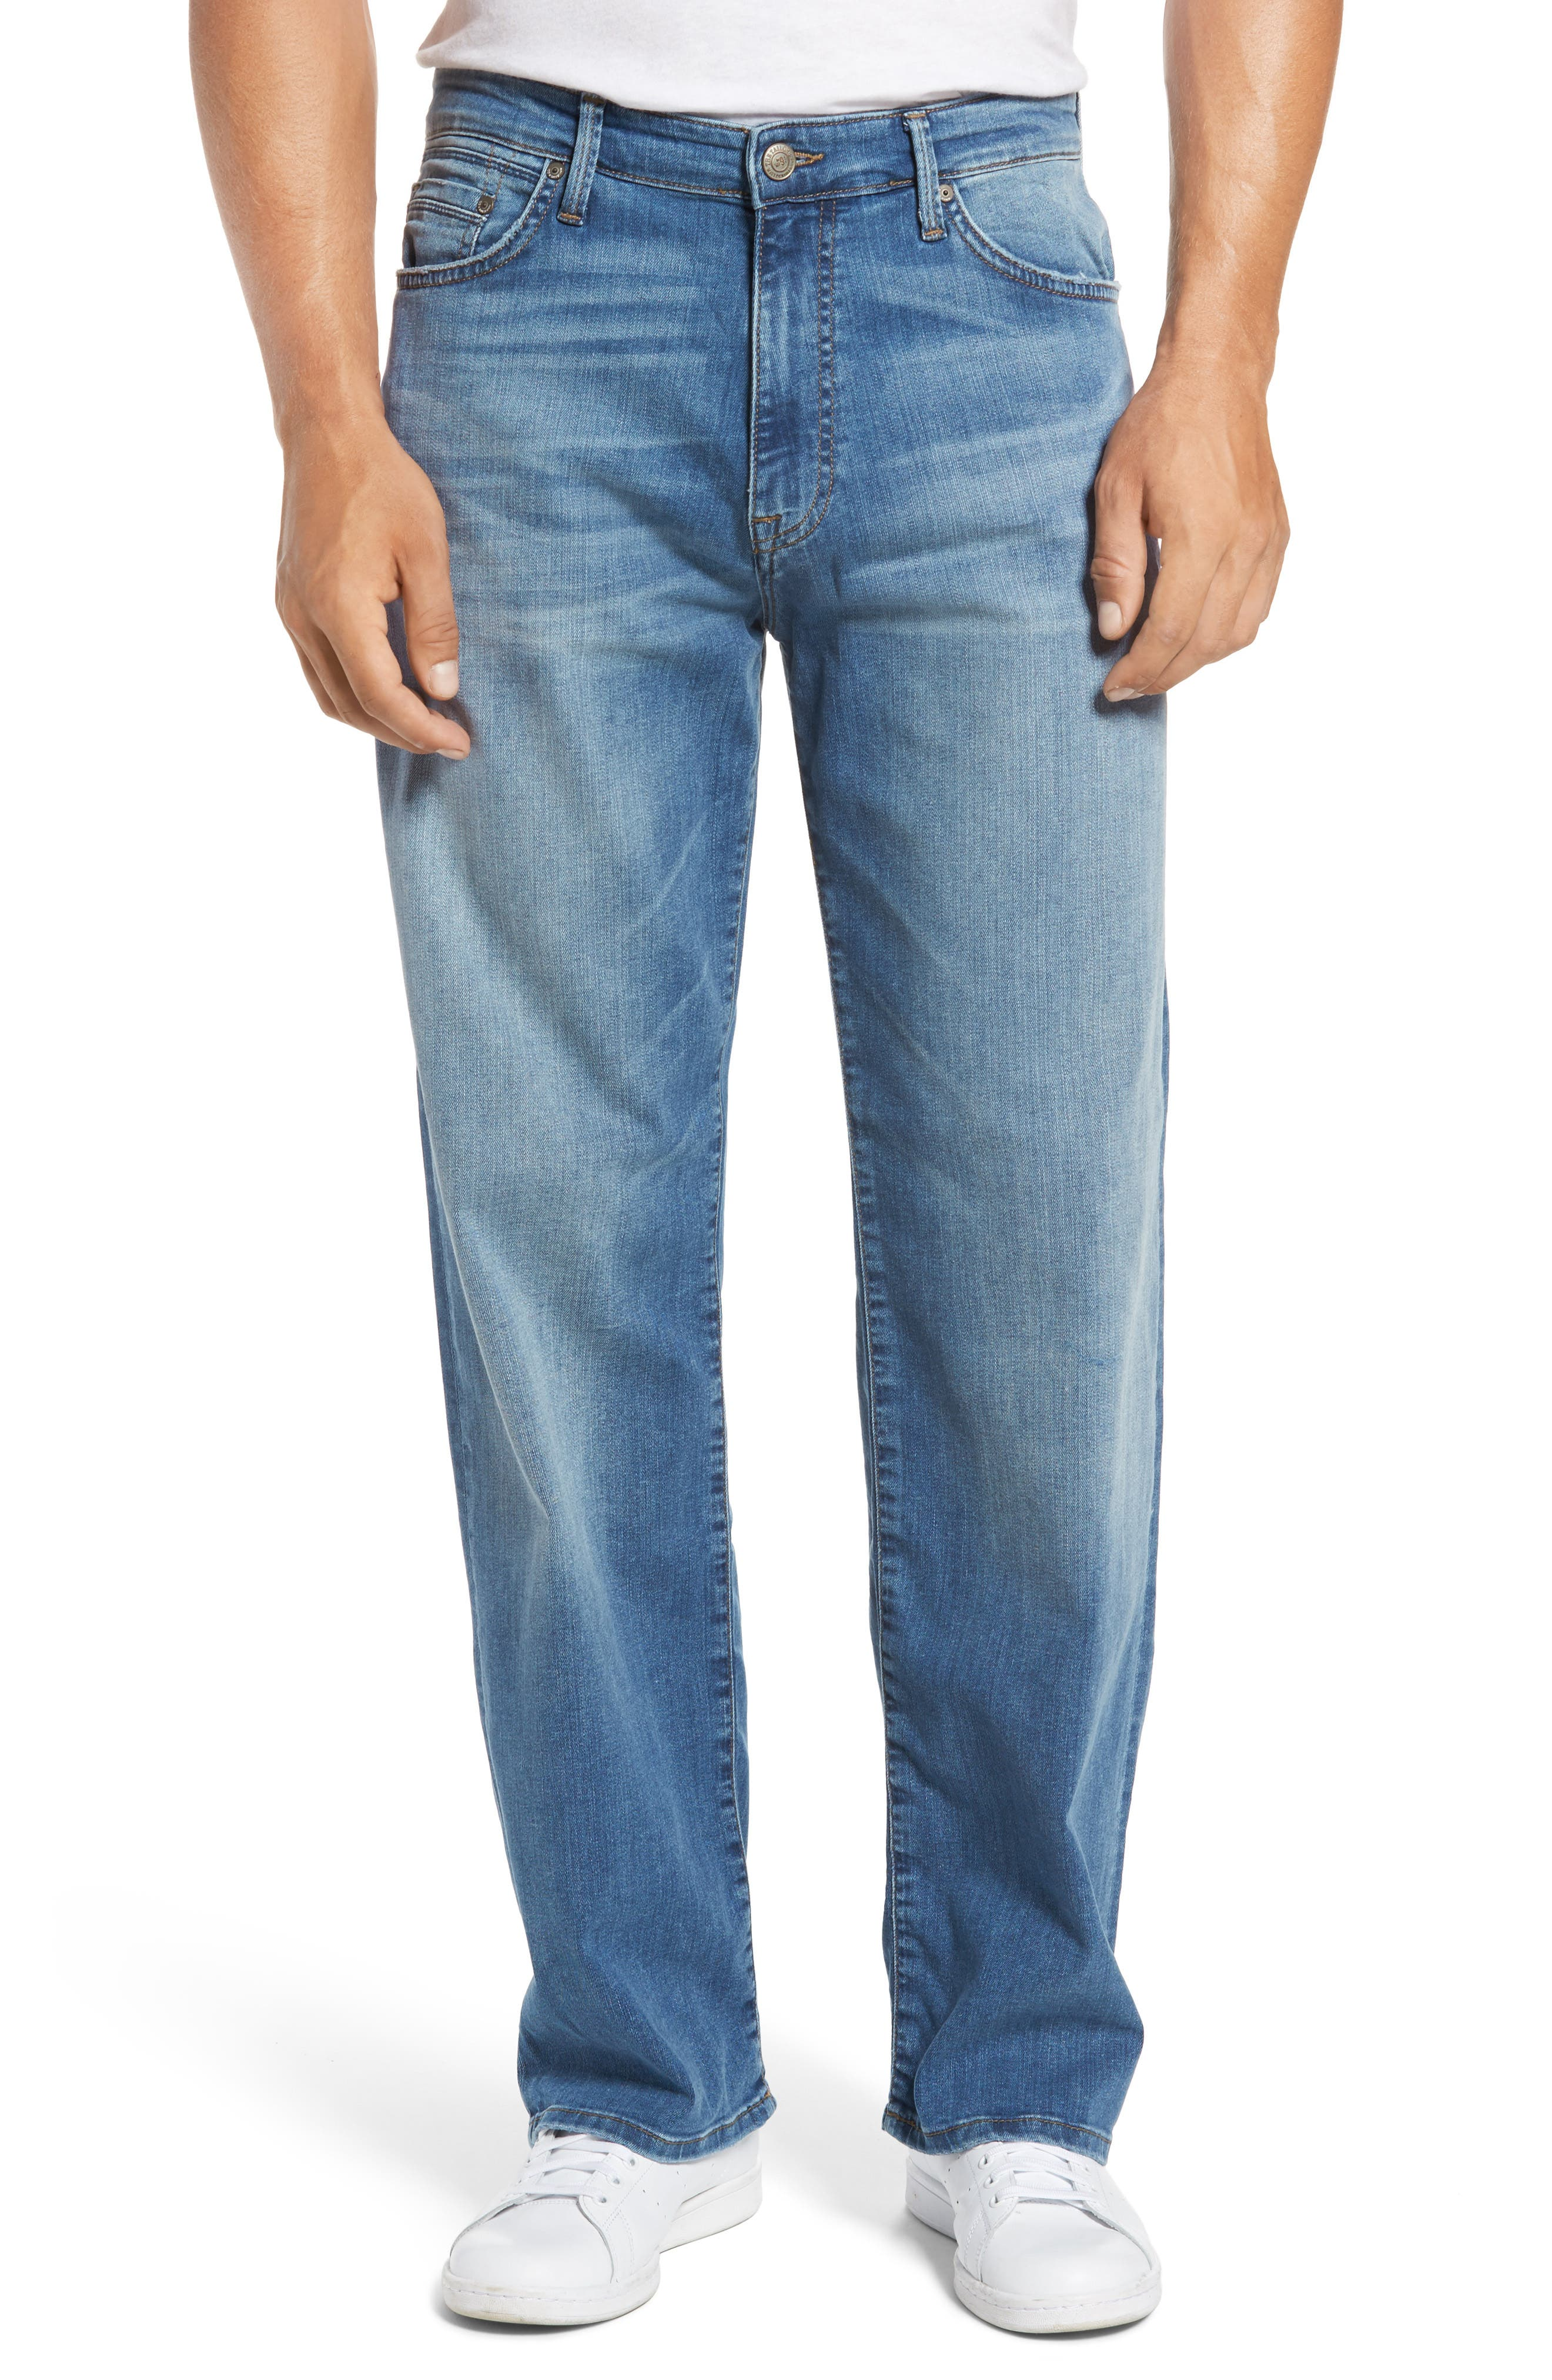 Max Relaxed Fit Jeans,                             Main thumbnail 1, color,                             401